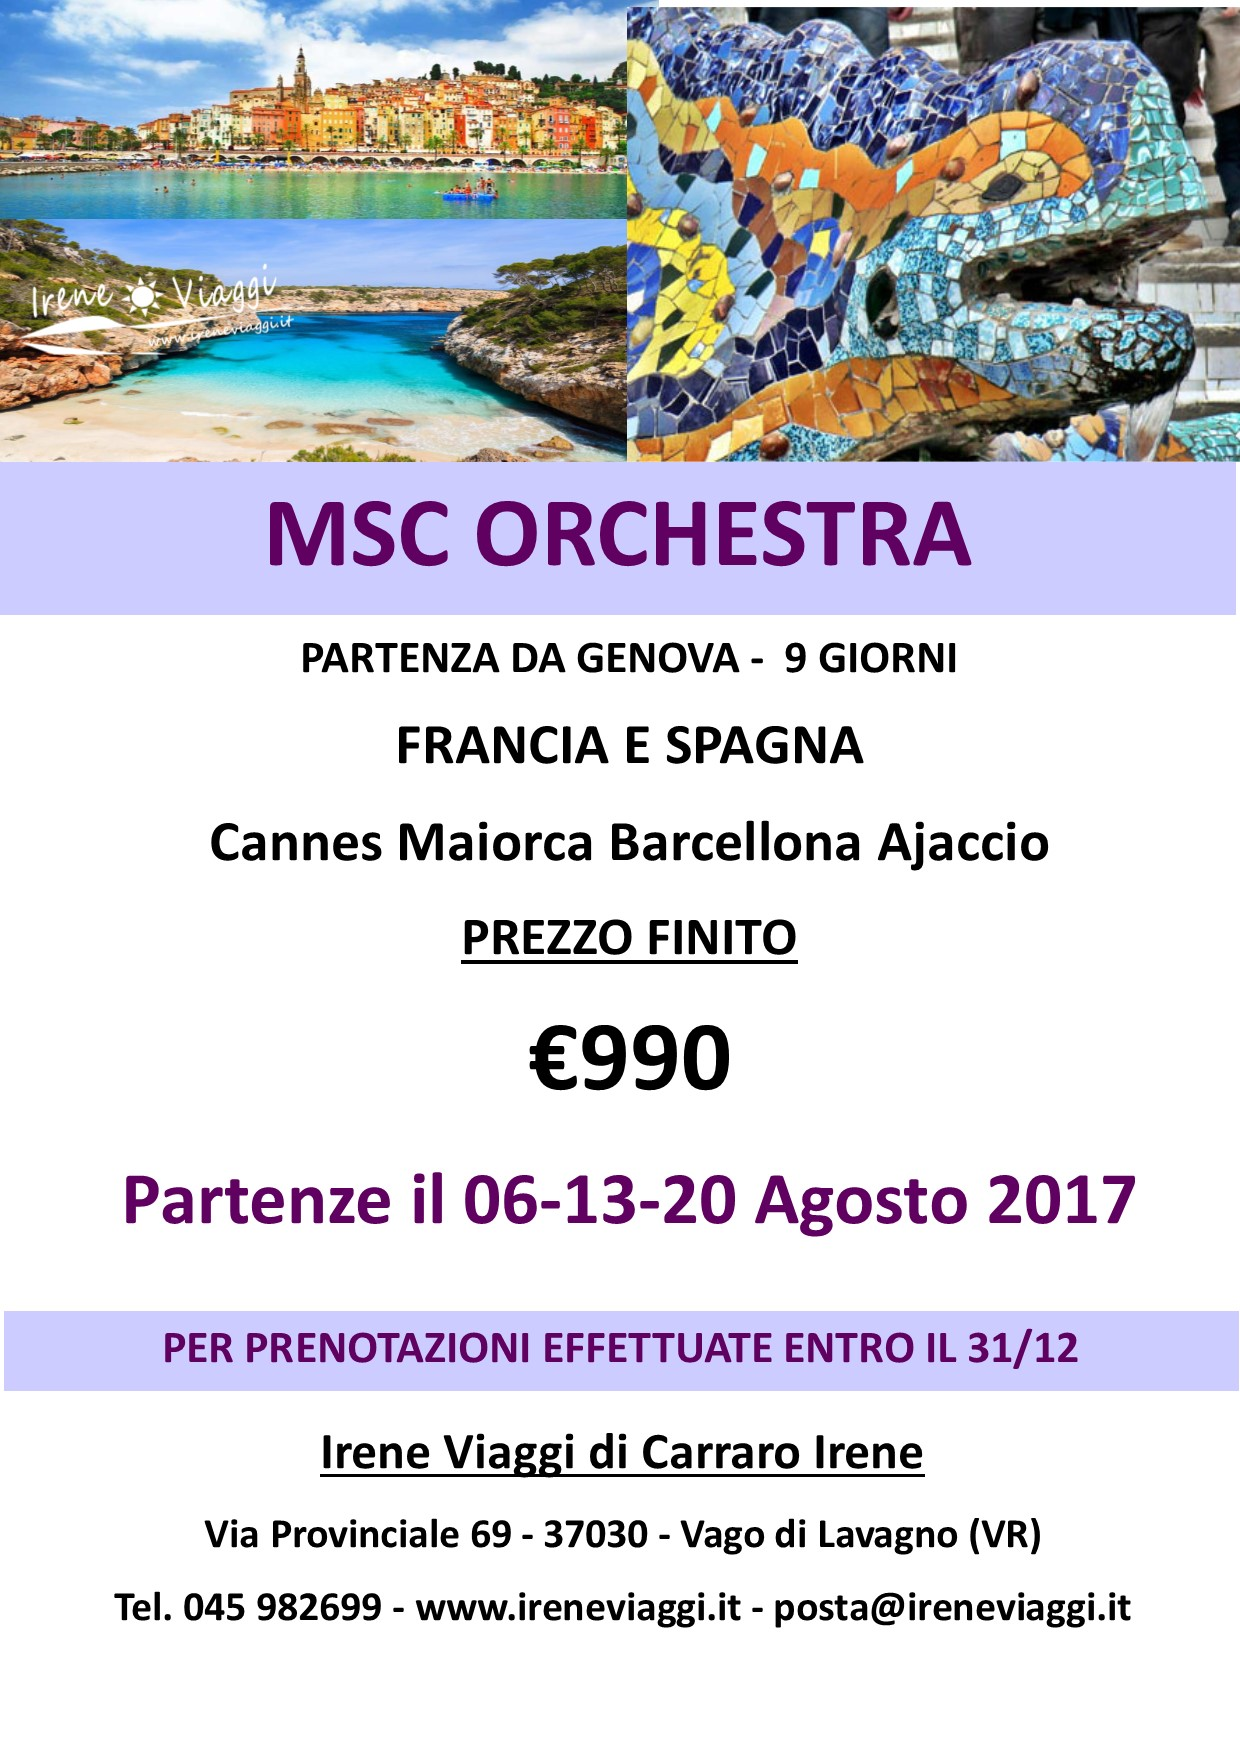 Crociera a bordo di Msc Orchestra